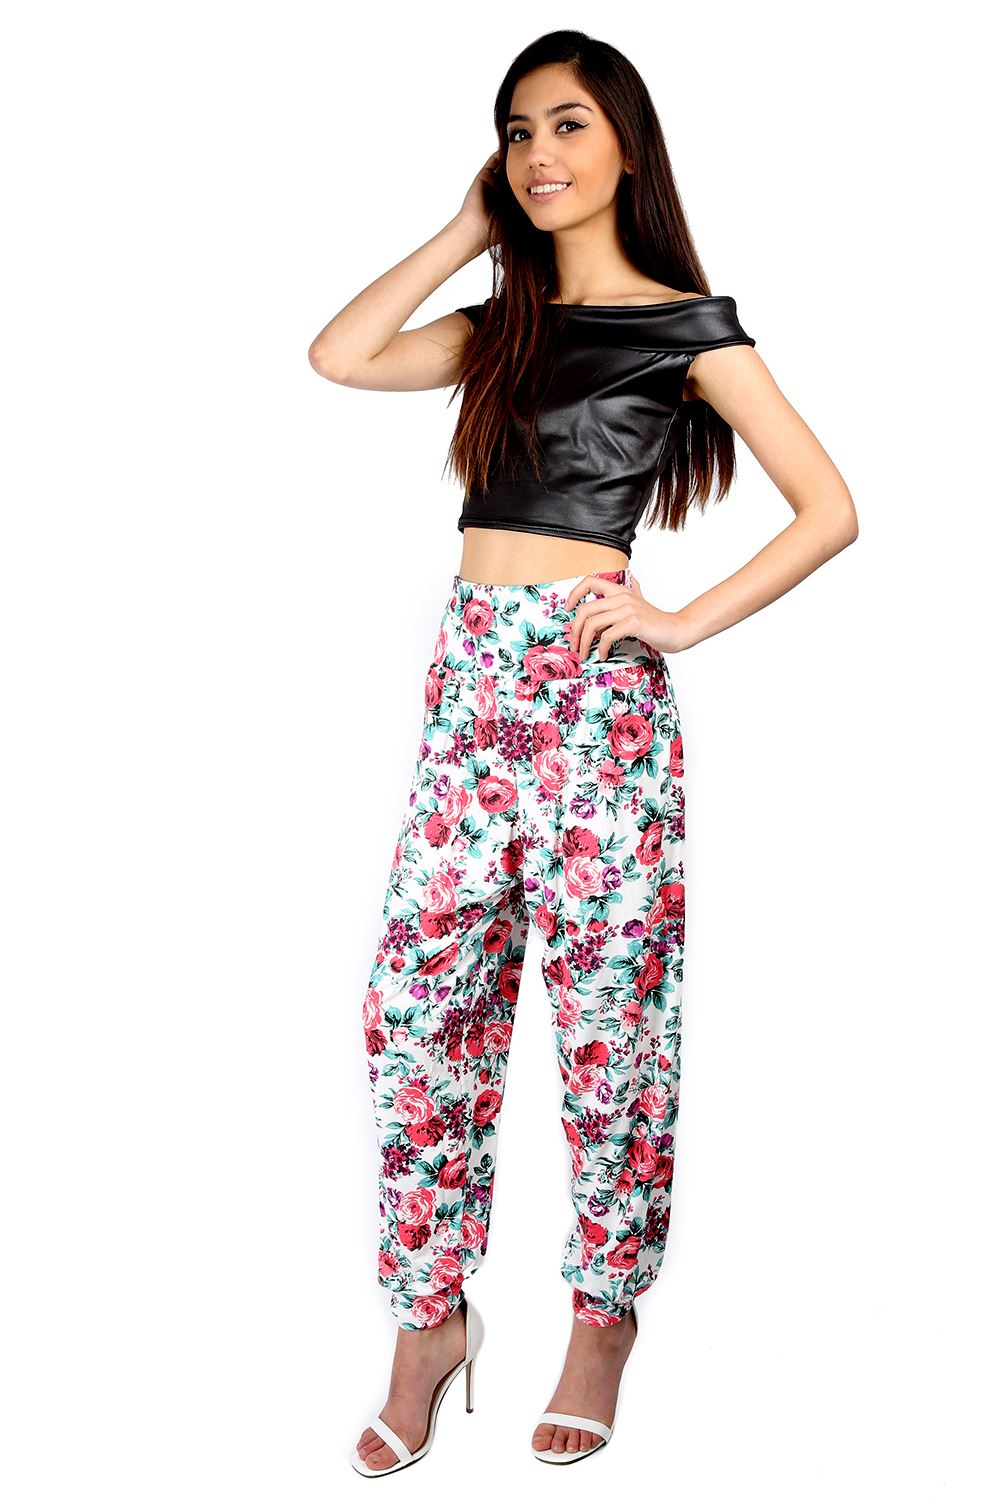 Shop from the world's largest selection and best deals for Animal Print Pants for Women. Free delivery and free returns on eBay Plus items.